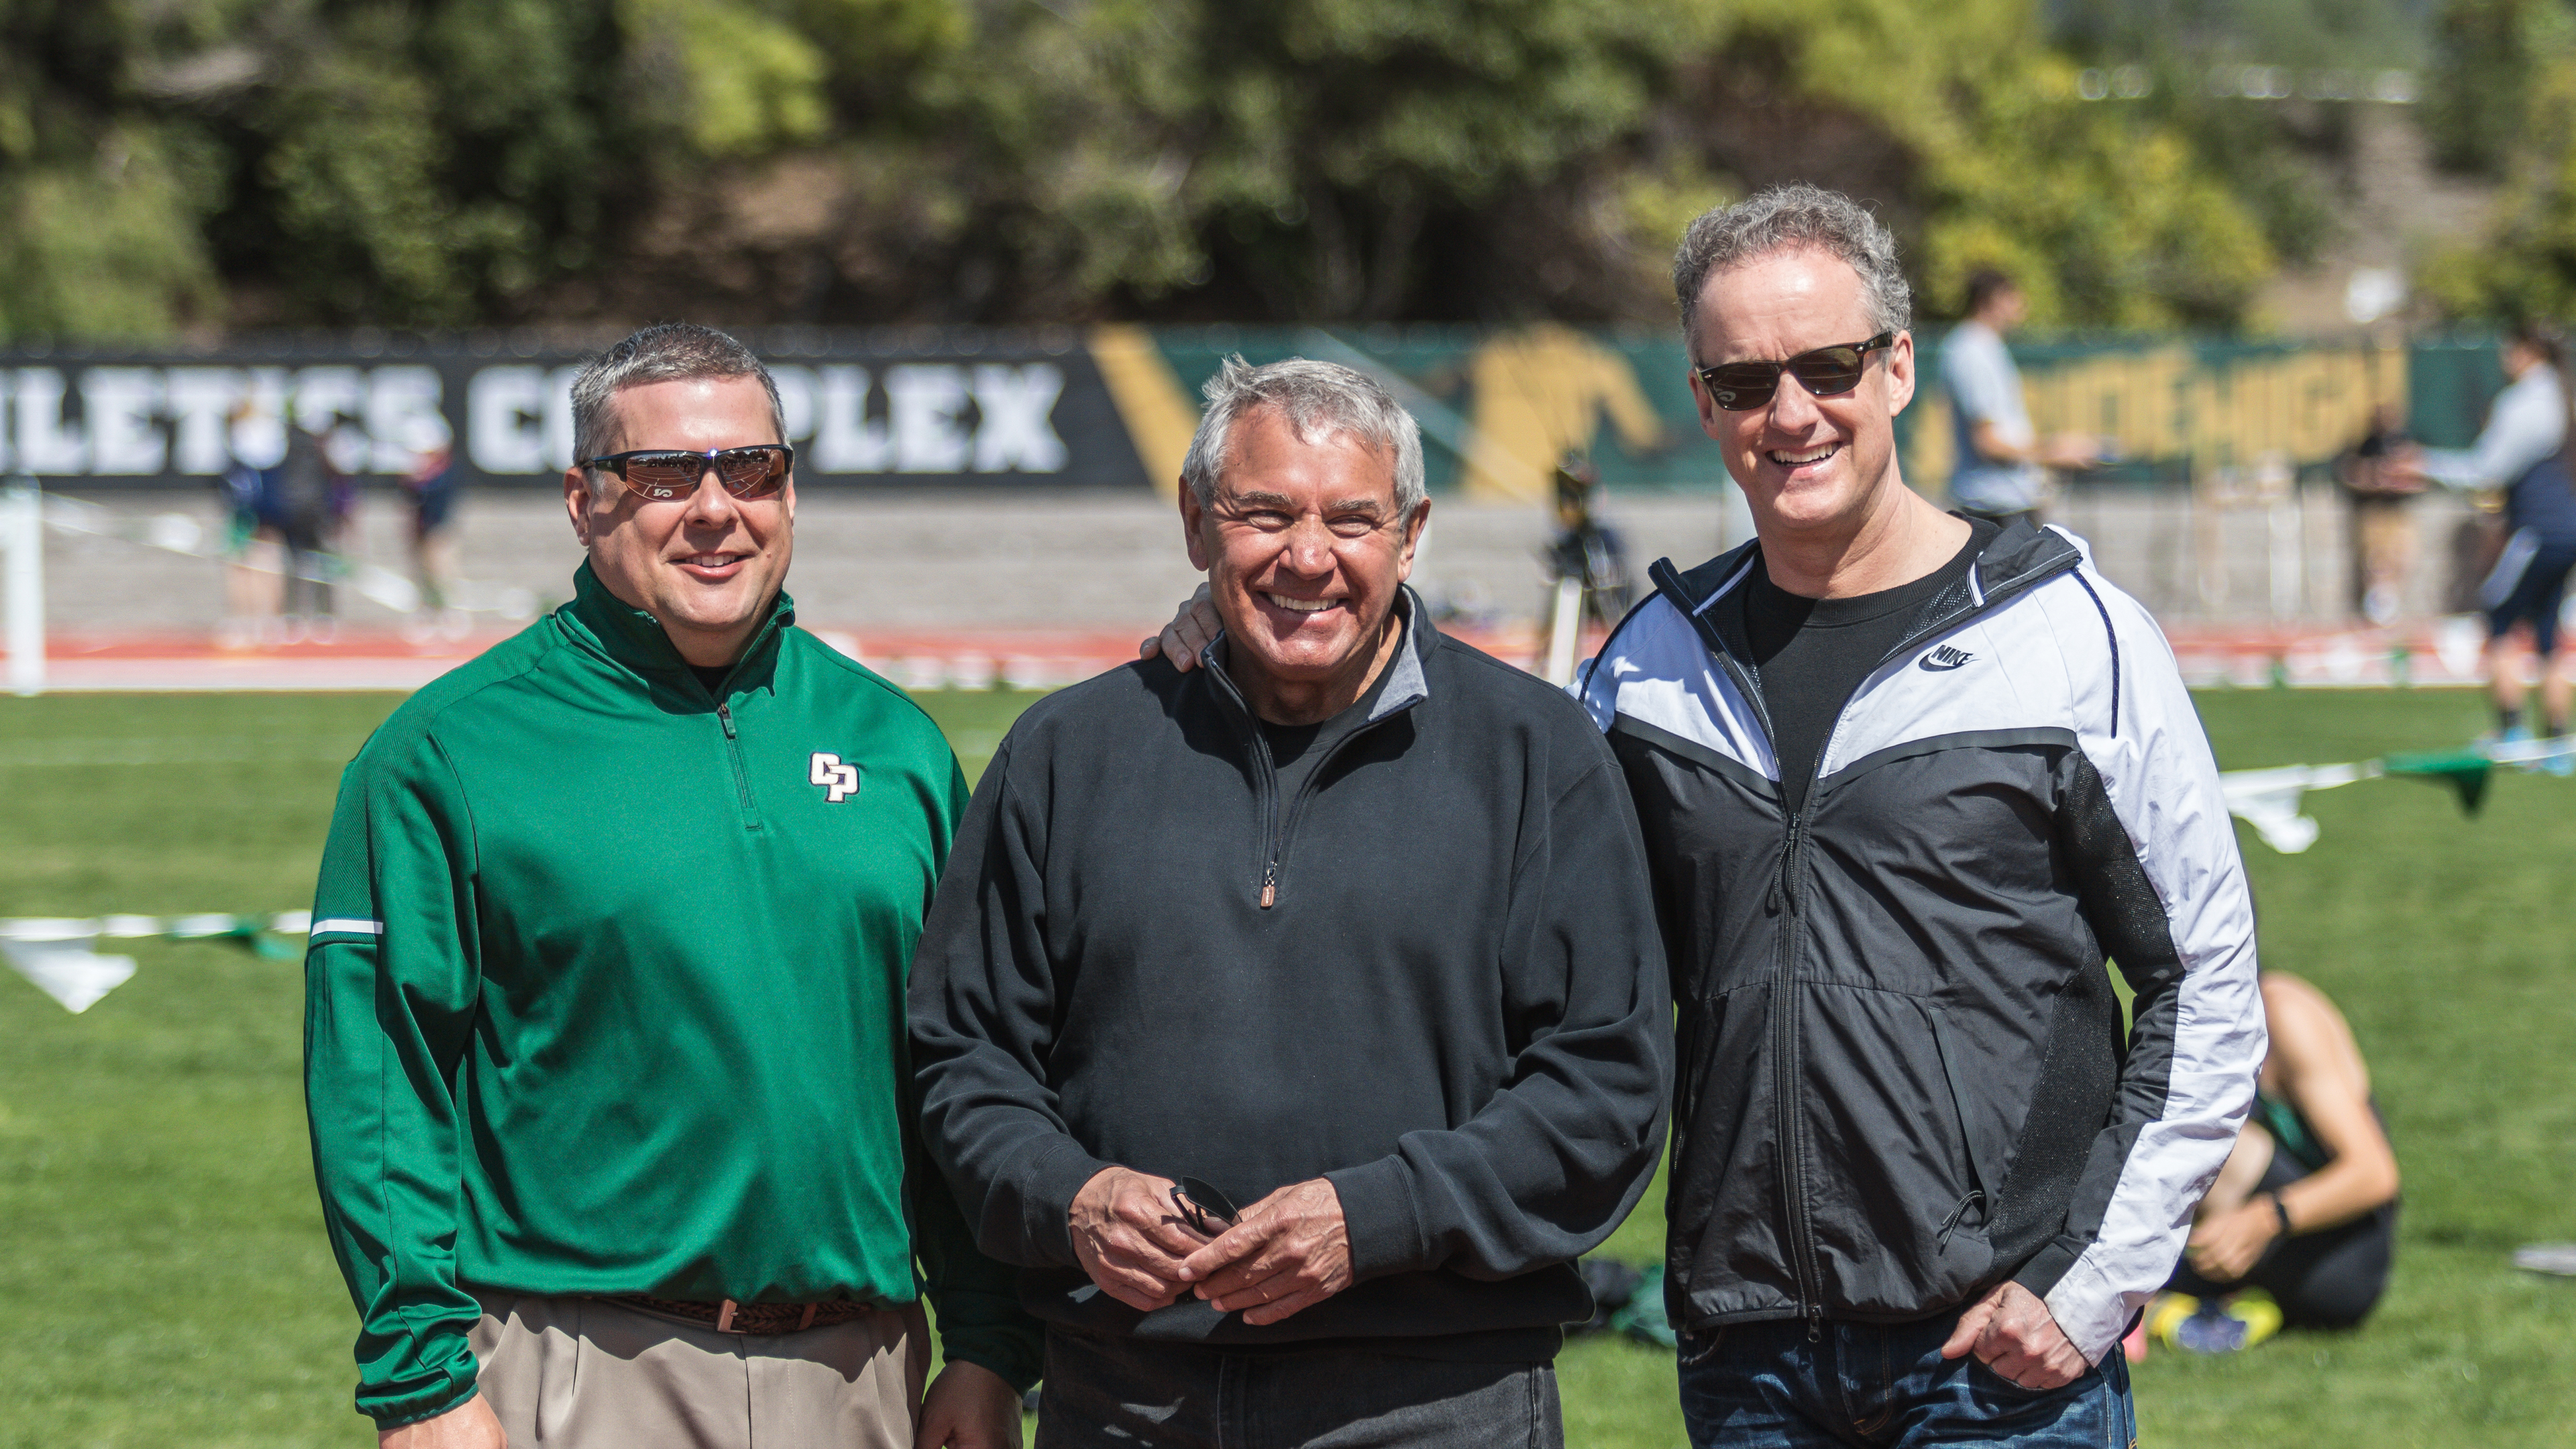 Cal Poly athletic director Don Olberhelmen with donors Steve Miller and John Capriotti